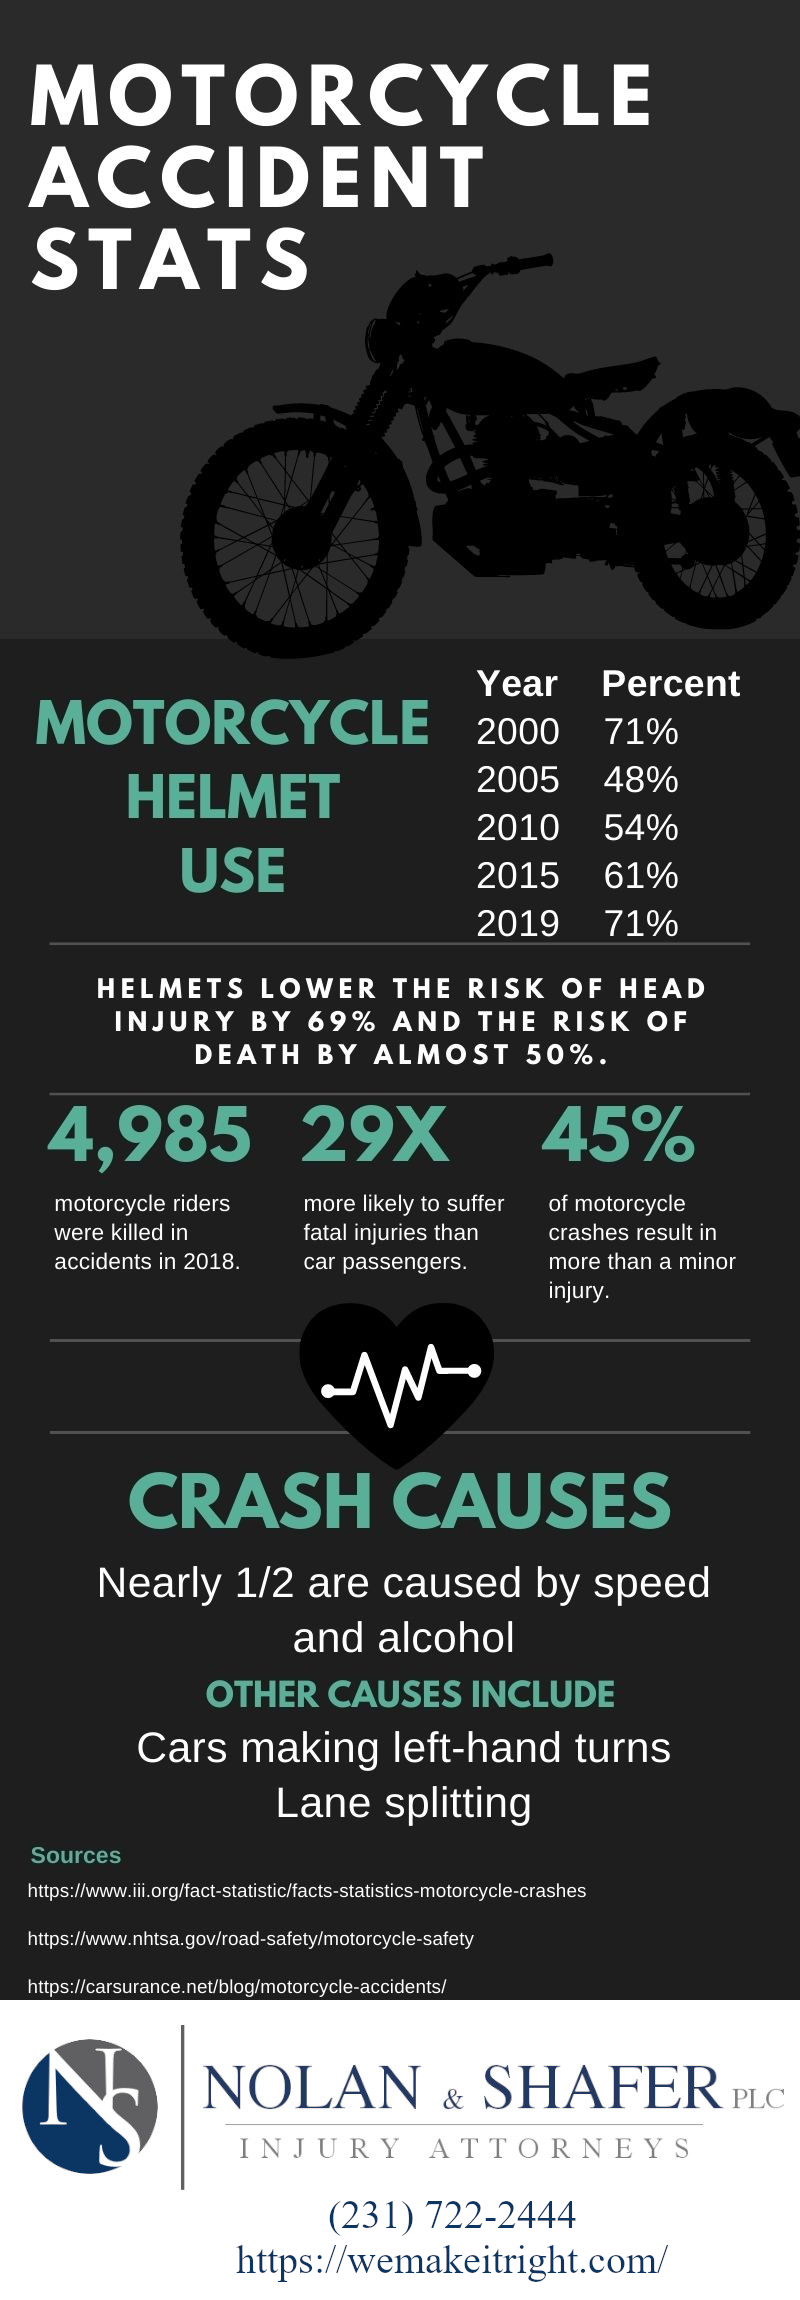 Motorcycle Safety Accident Statistics Infographic